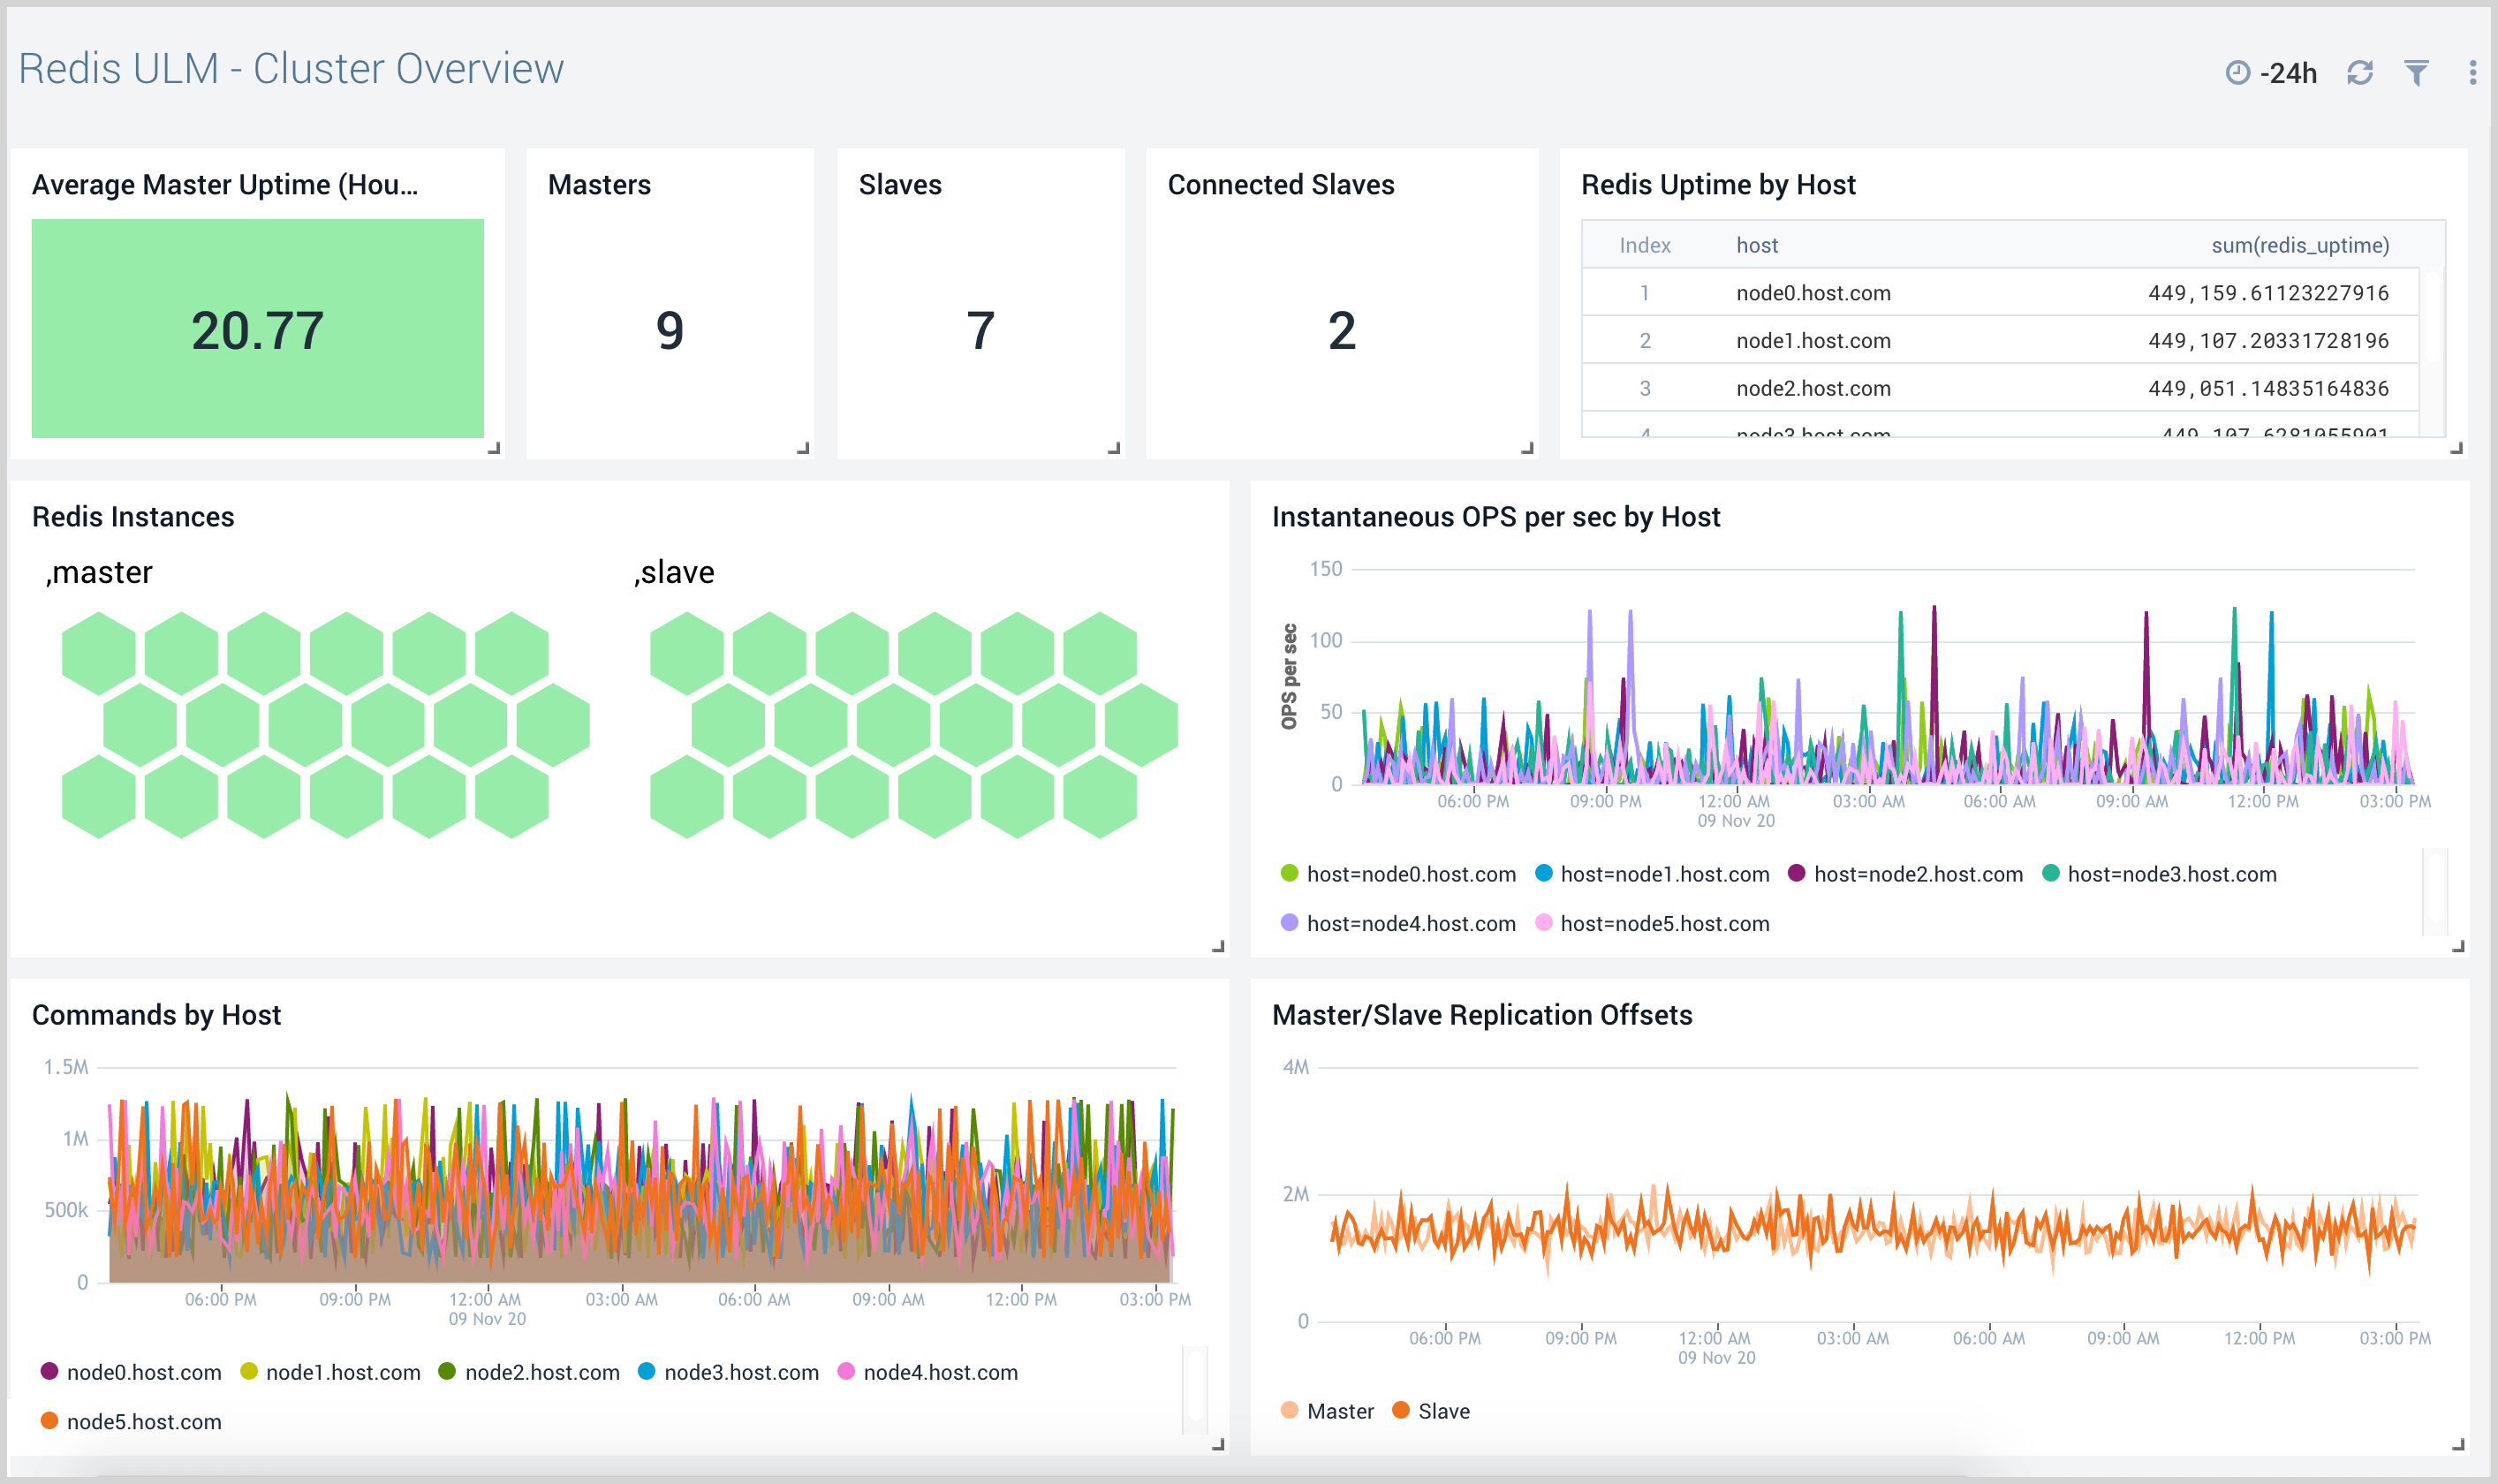 Redis ULM Cluster Overview